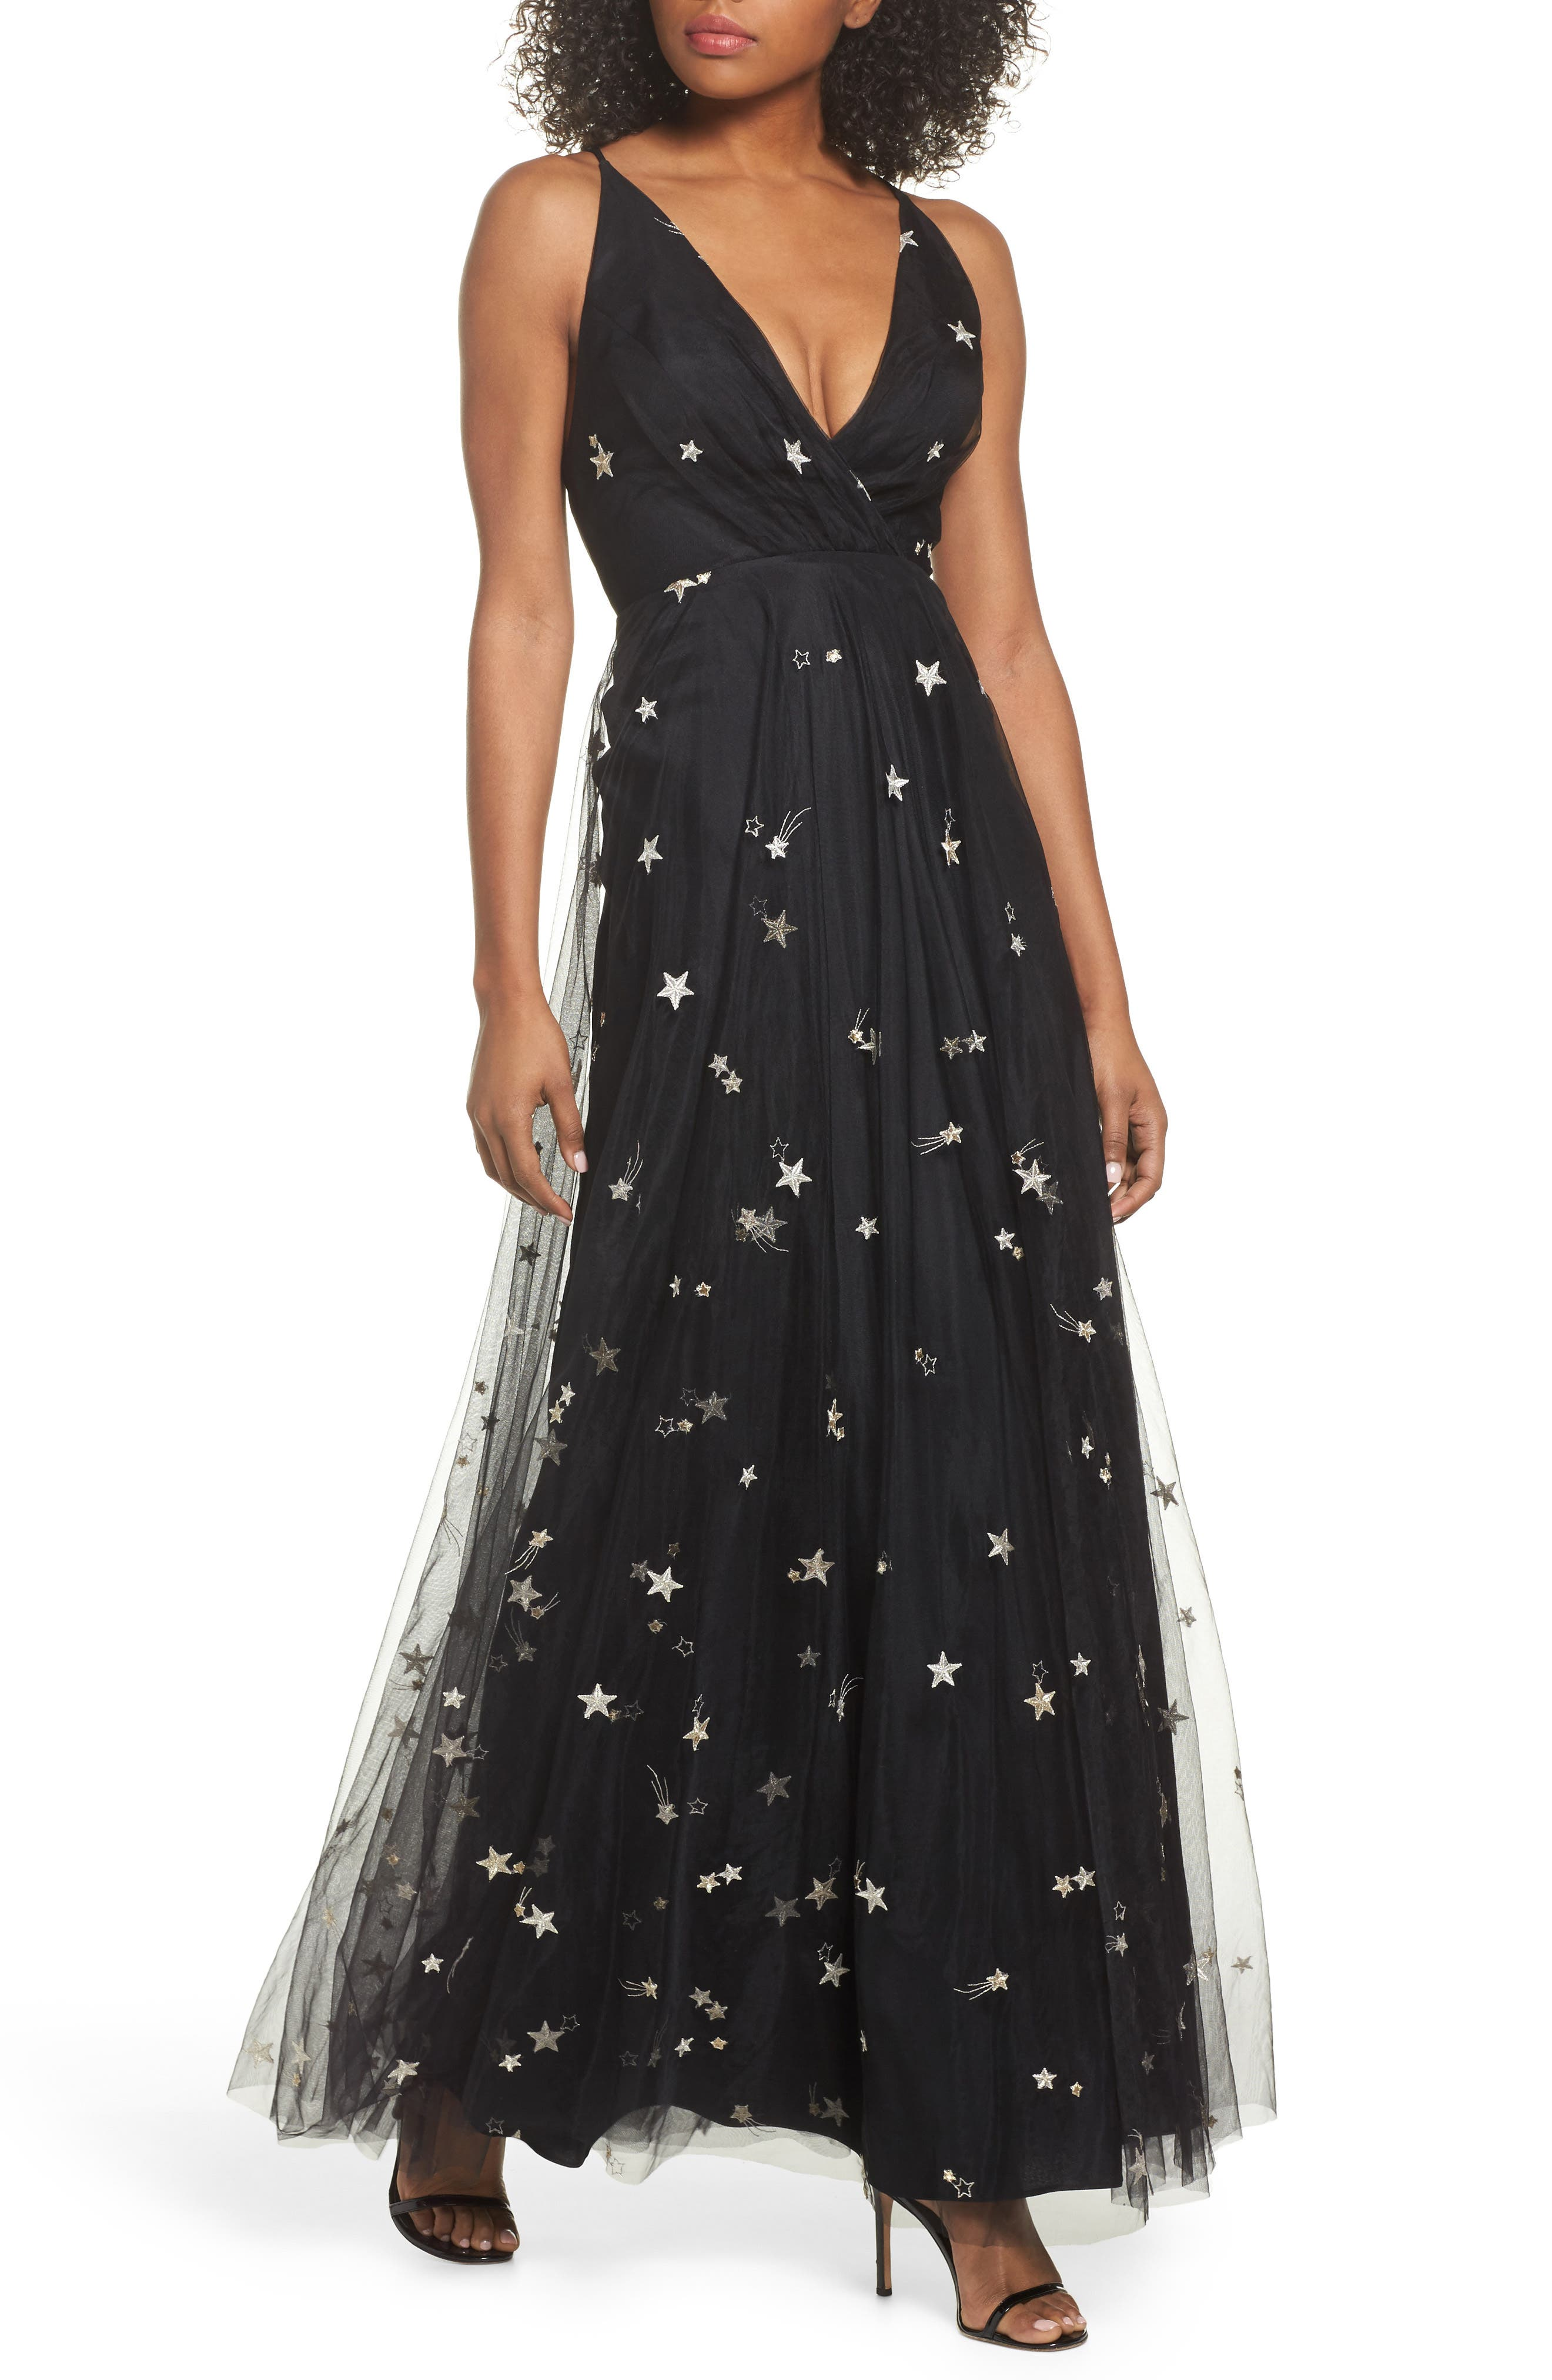 Chelsea Starry Night Embroidered Halter Maxi Dress,                         Main,                         color, Black/ Metallic